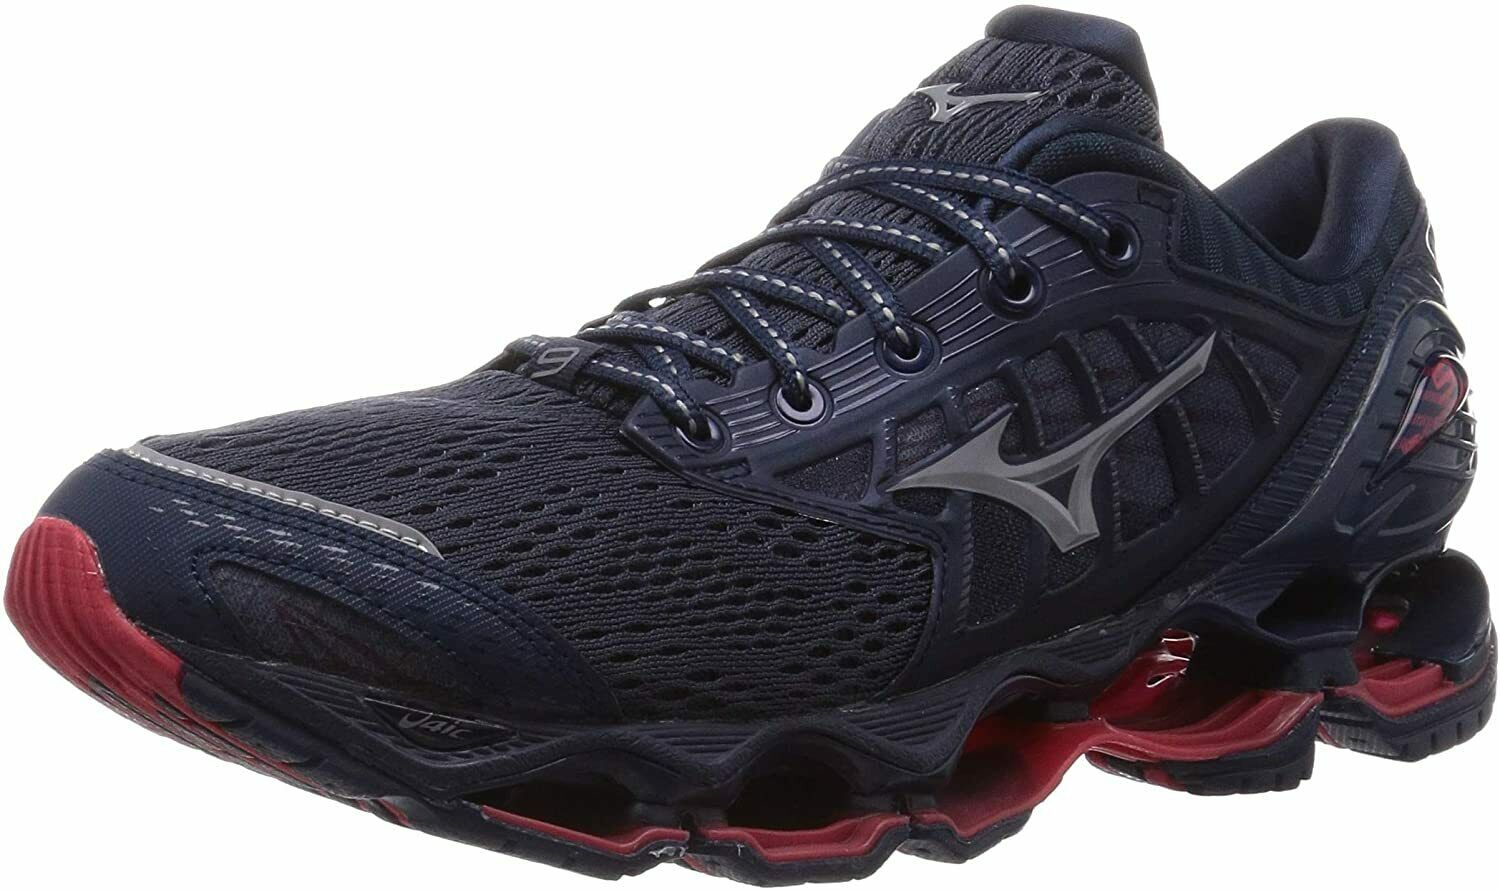 Mizuno Running shoes WAVE PROPHECY 9 J1GC2000 25.5cm US Size US7.5